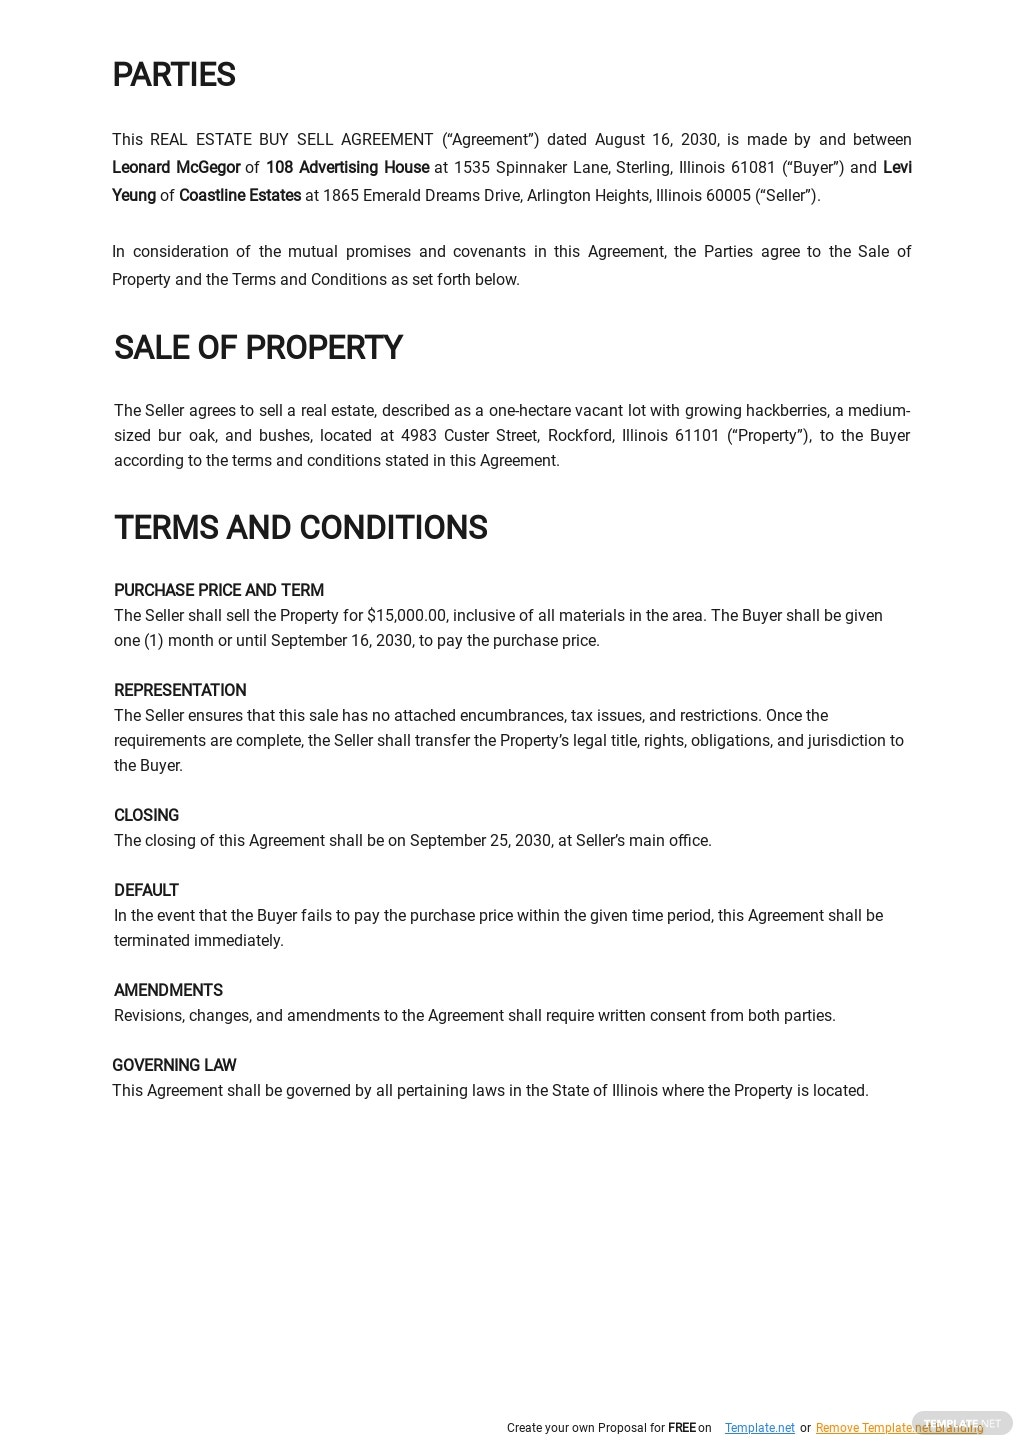 Real Estate Buy Sell Agreement Template 1.jpe